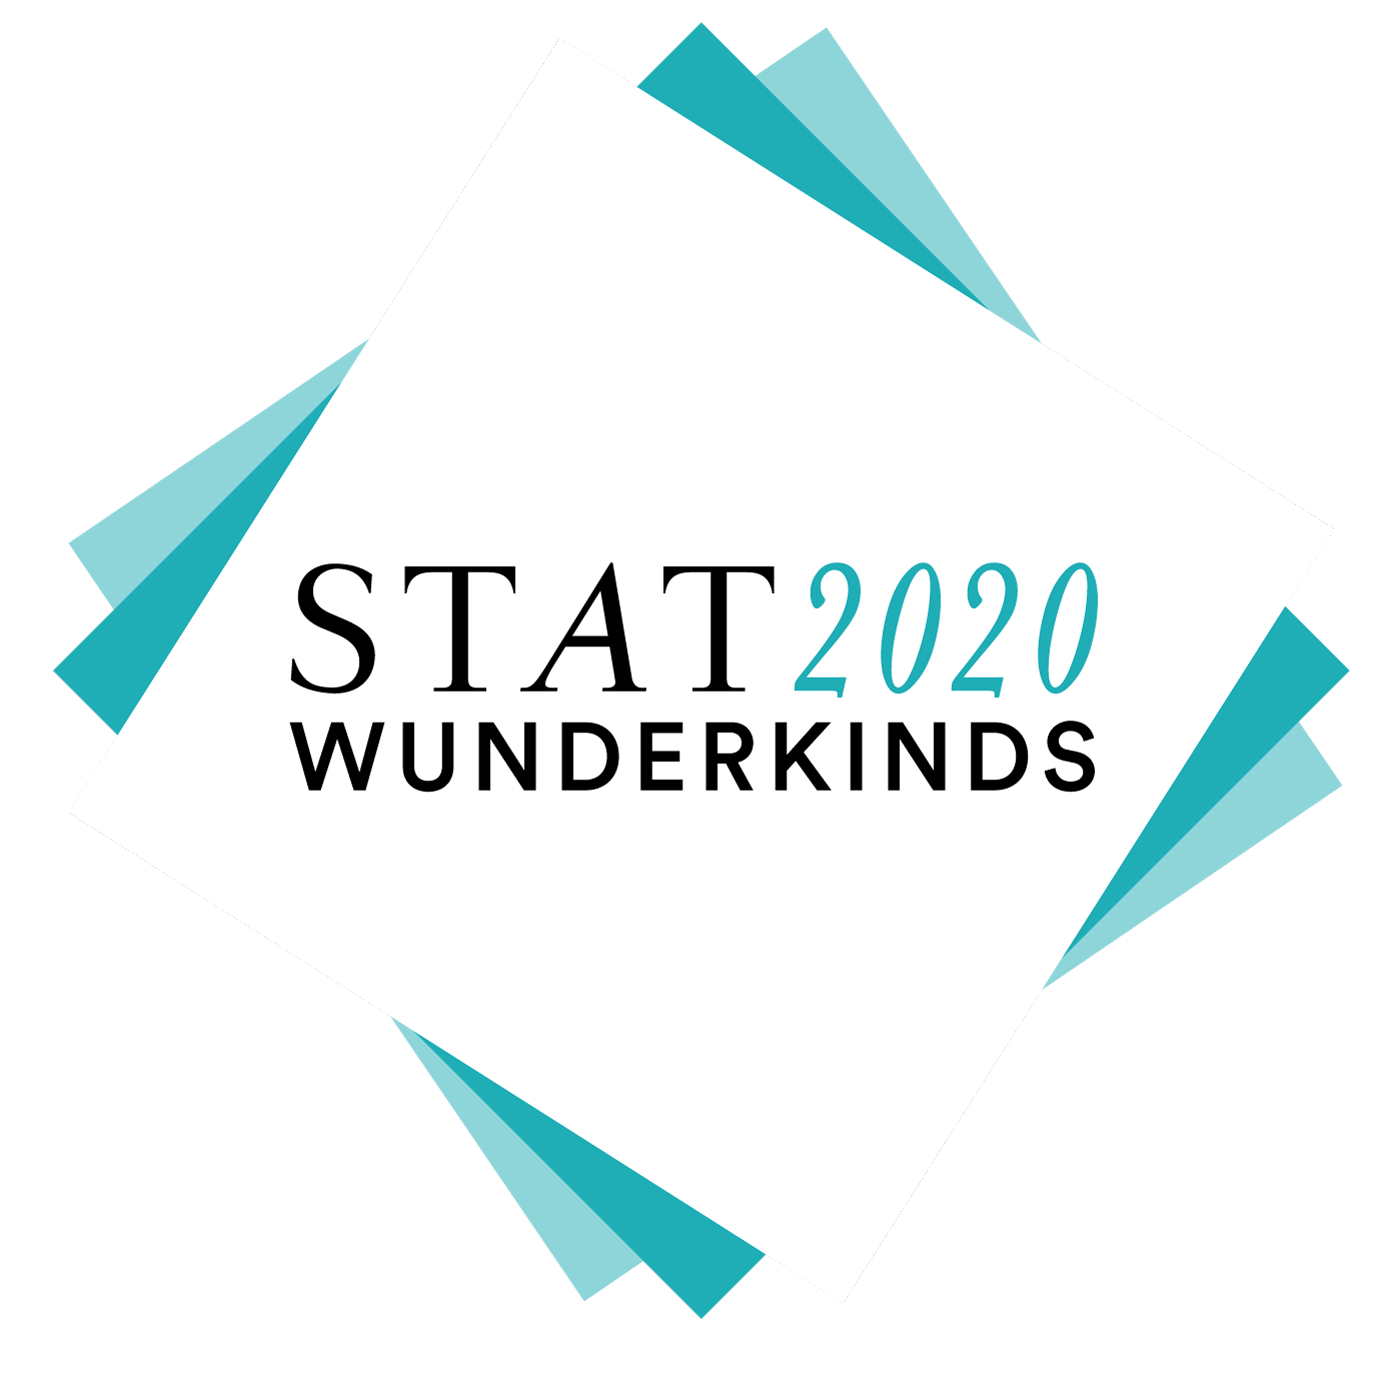 STAT Wunderkinds